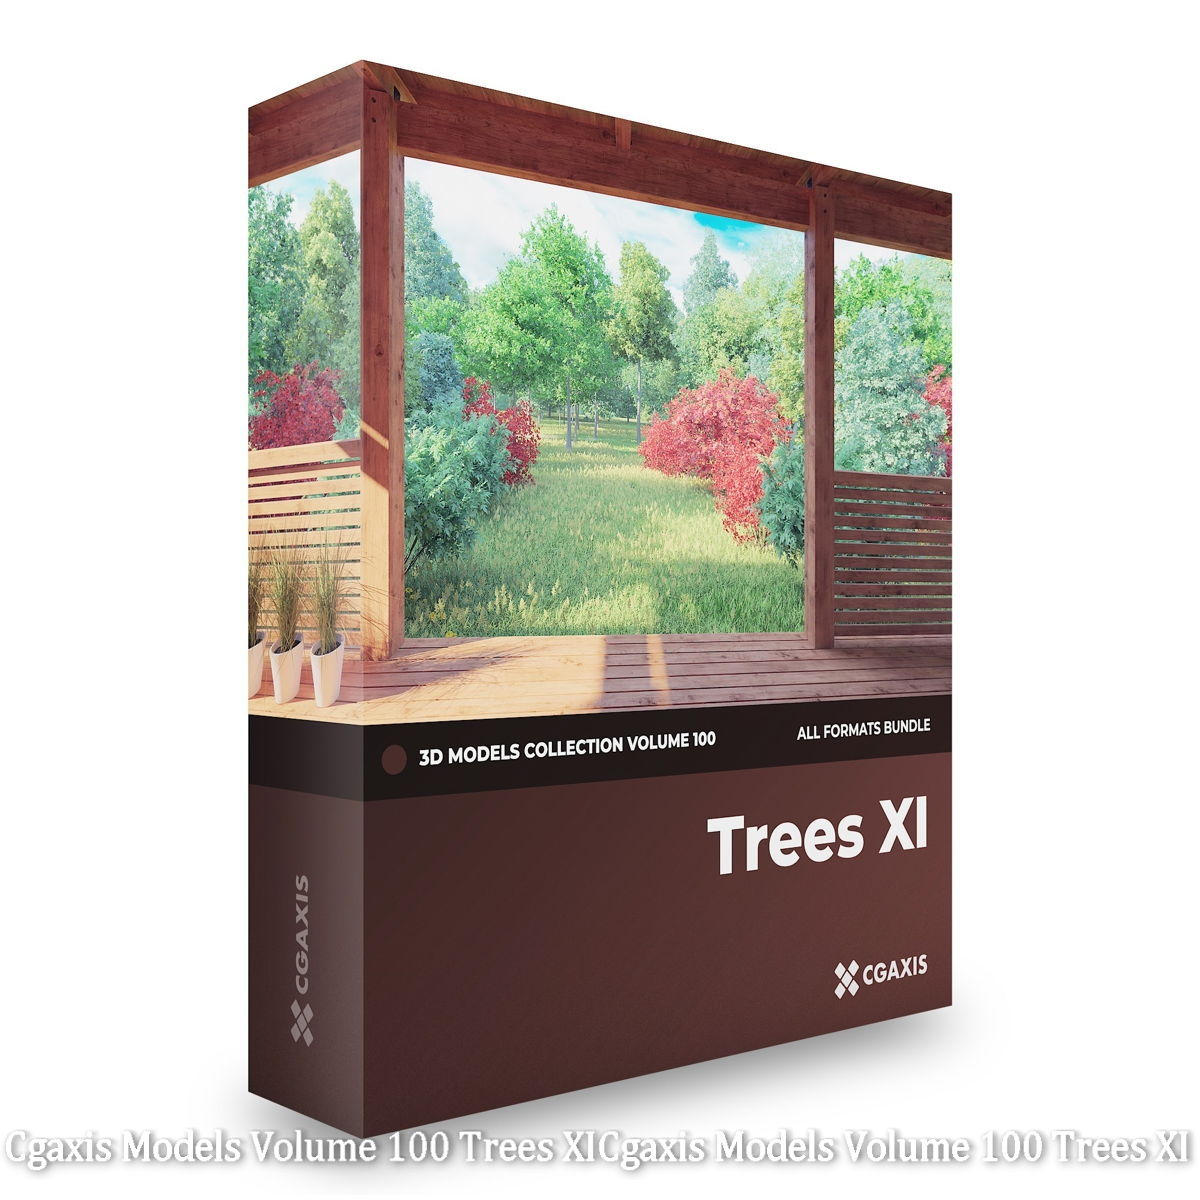 Download Cgaxis Models Volume 100 Trees XI